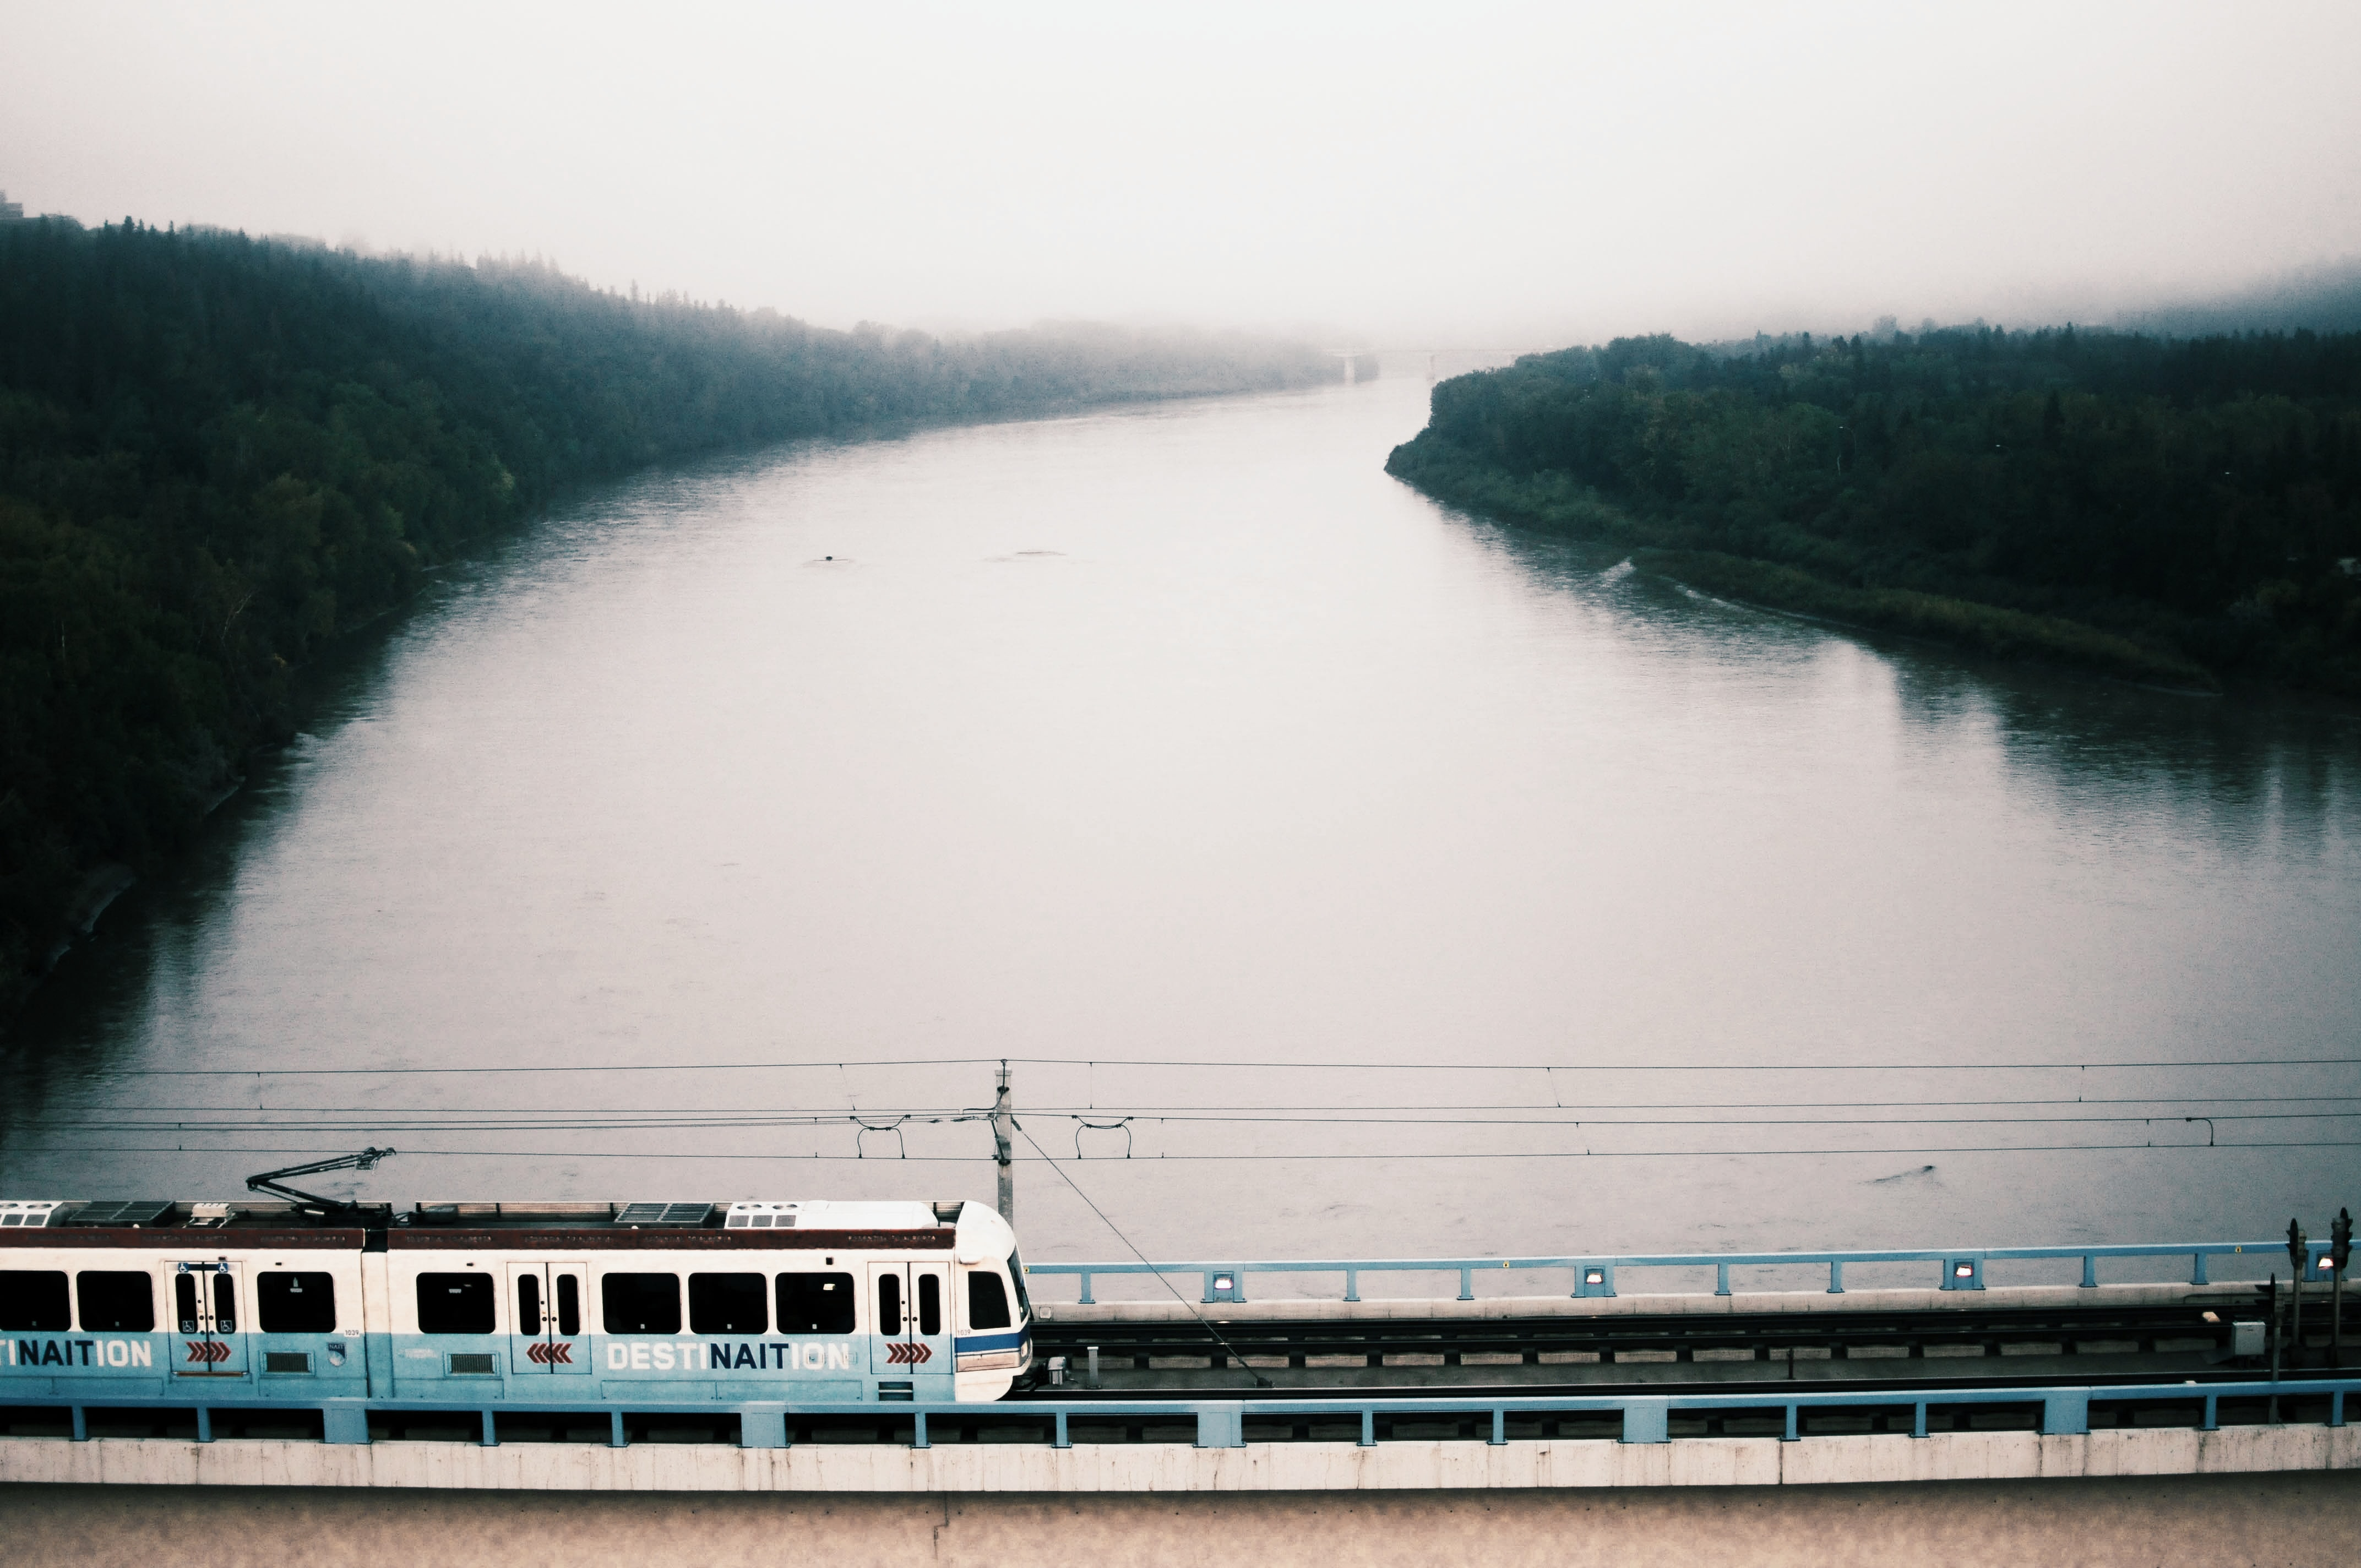 Public transport train on a bridge crosses the river on a misty and cloudy day